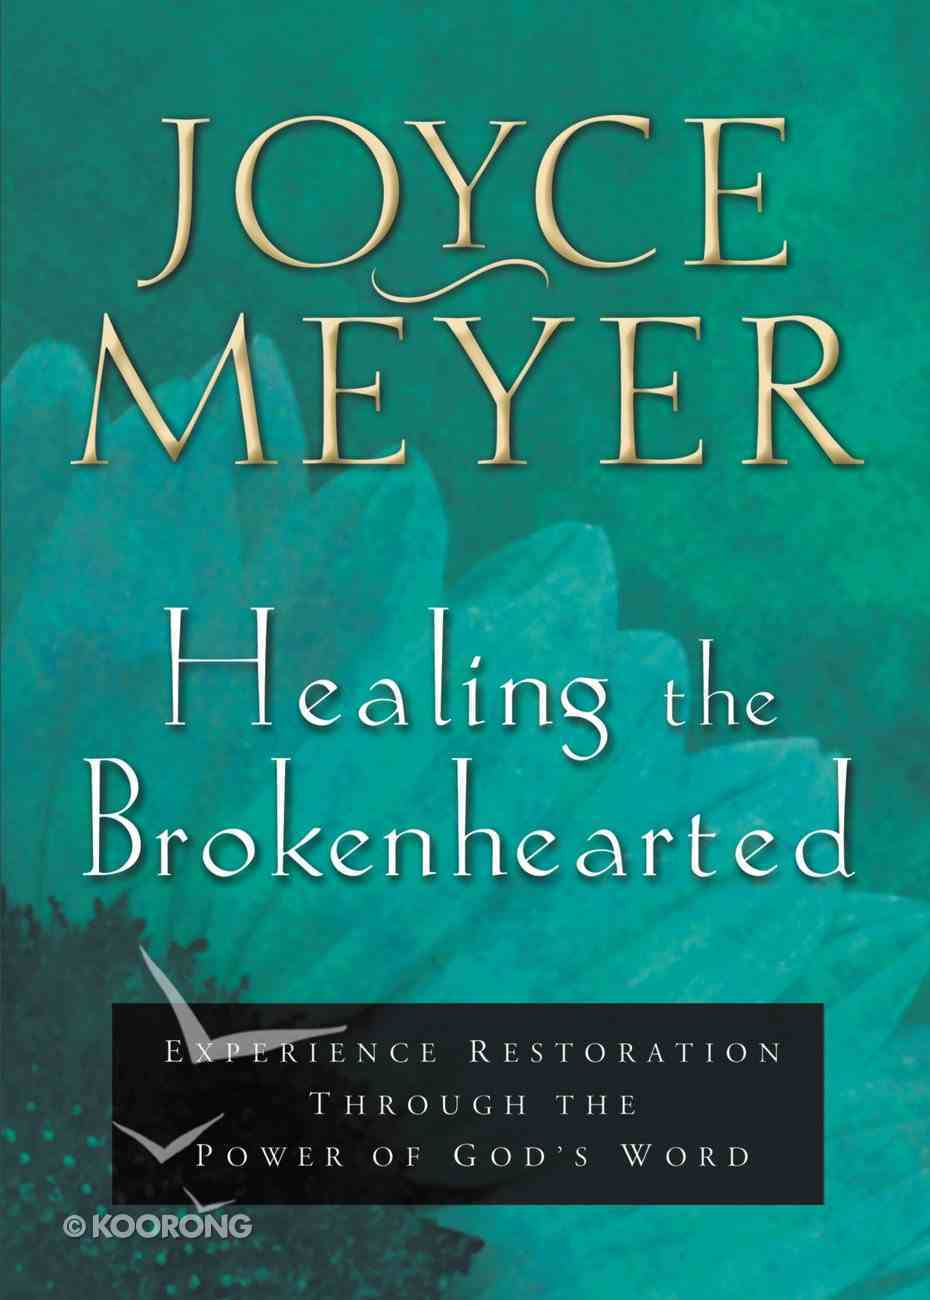 Healing the Brokenhearted Paperback